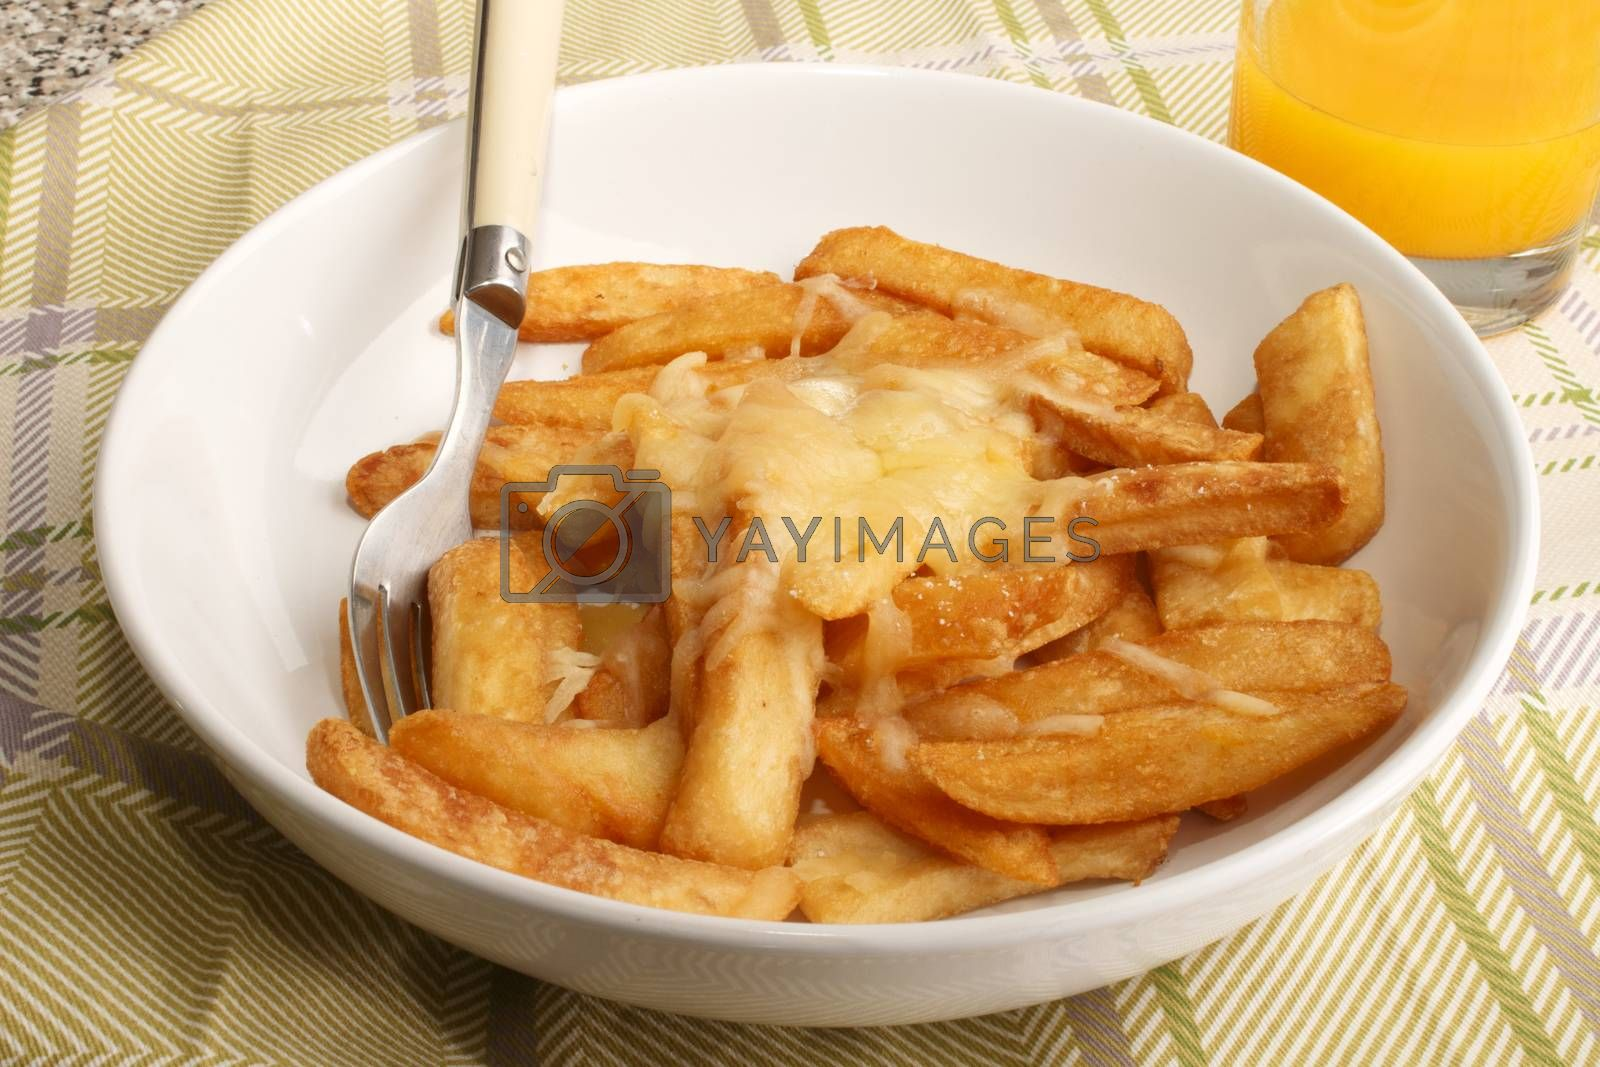 french fries with melted irish cheddar cheese and orange juice in a glass